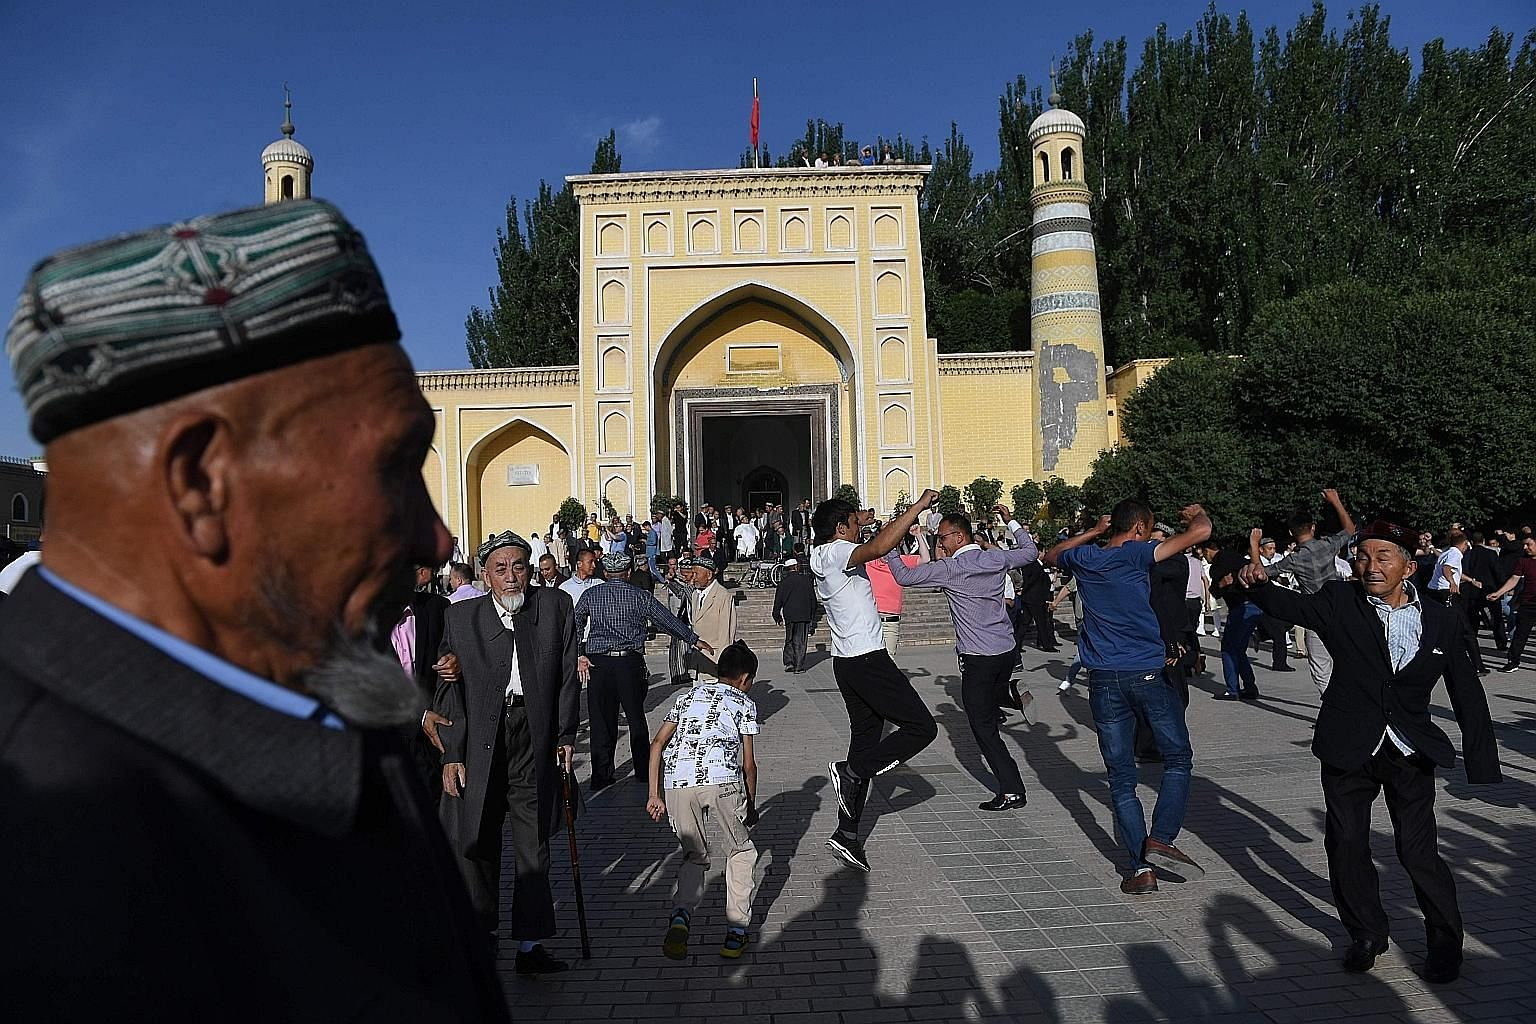 Uighur men dancing outside a mosque in Kashgar, in China's western Xinjiang region, after prayers last month marking the end of Ramadan. The region is tightly controlled by the Chinese authorities.